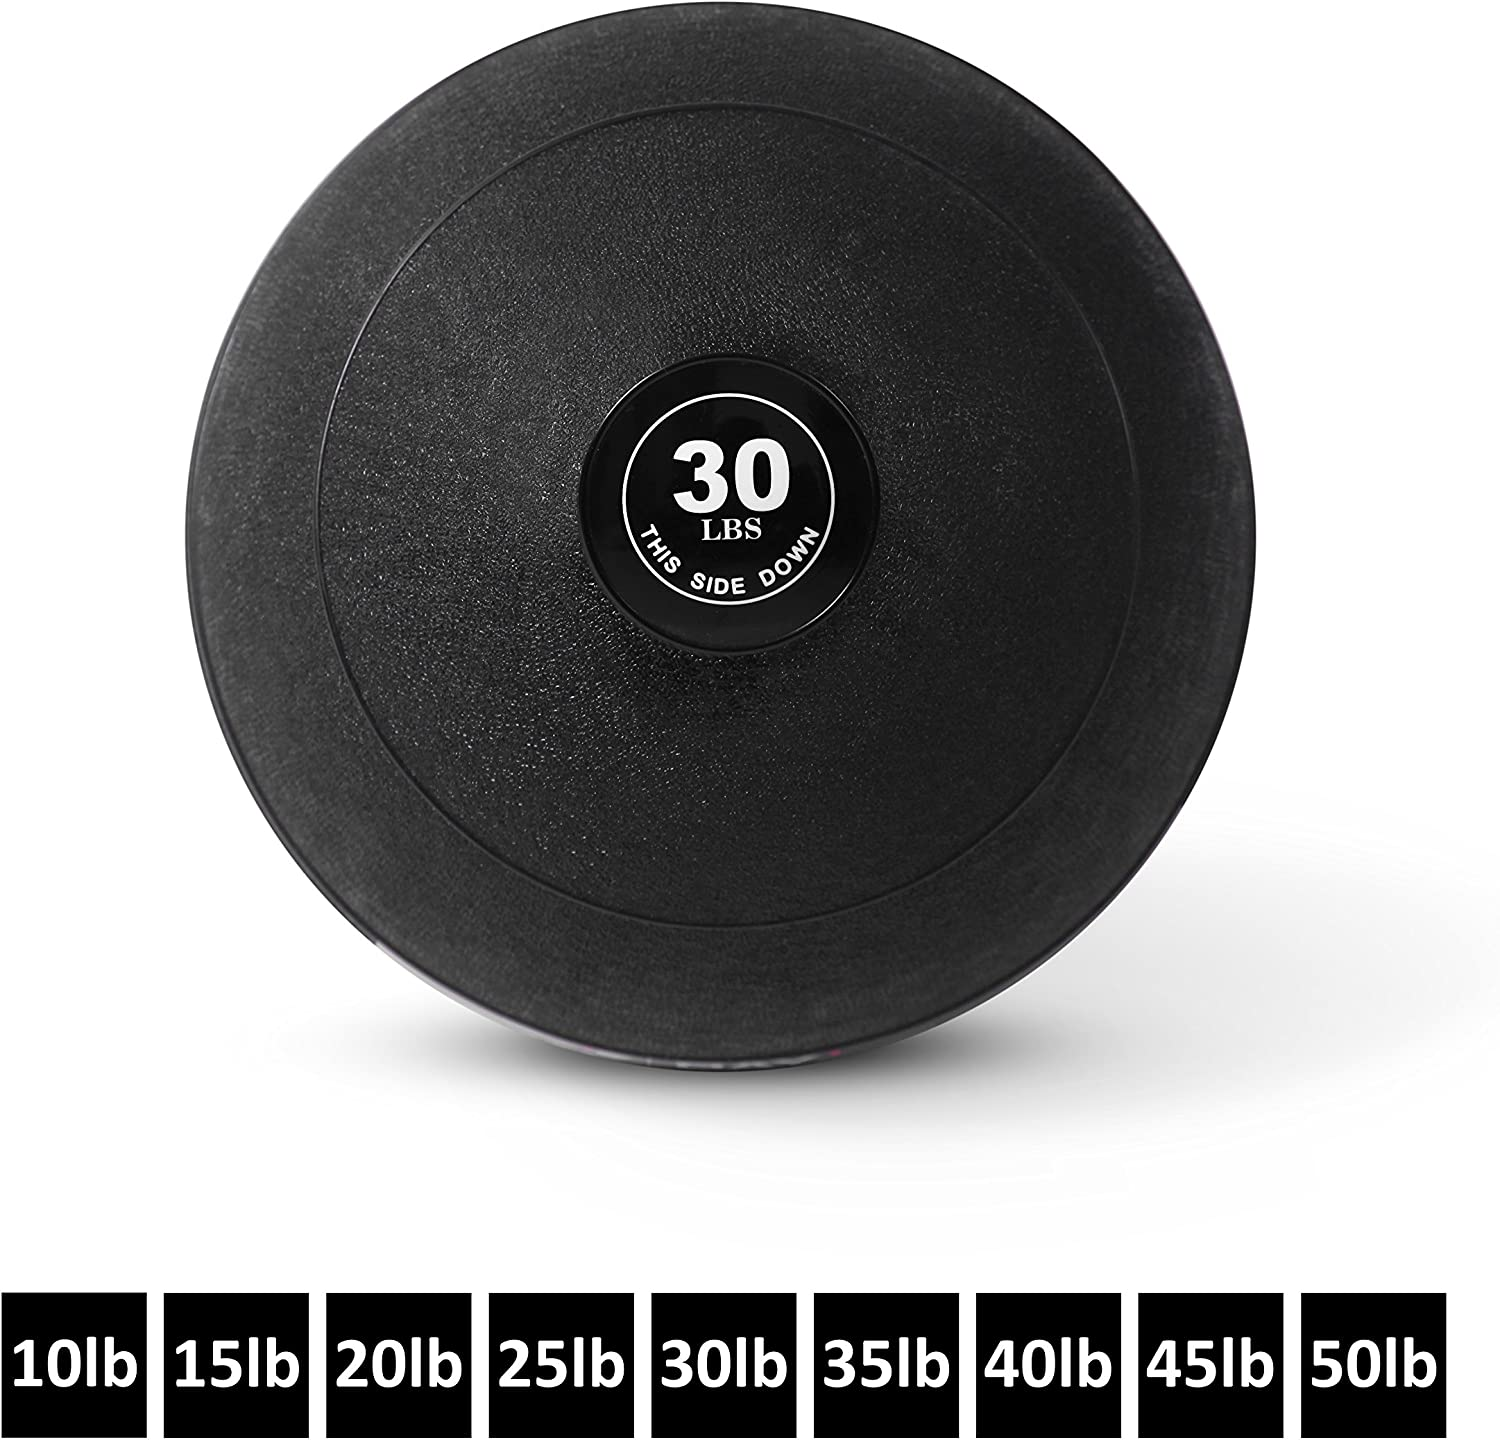 a233f80425a7 ... Accessories for Intensity Exercise, Functional Strength Training,  Cardio, Crossfit, and Plyometrics10 lbs High Fitness nokrnk7434-Sporting  goods